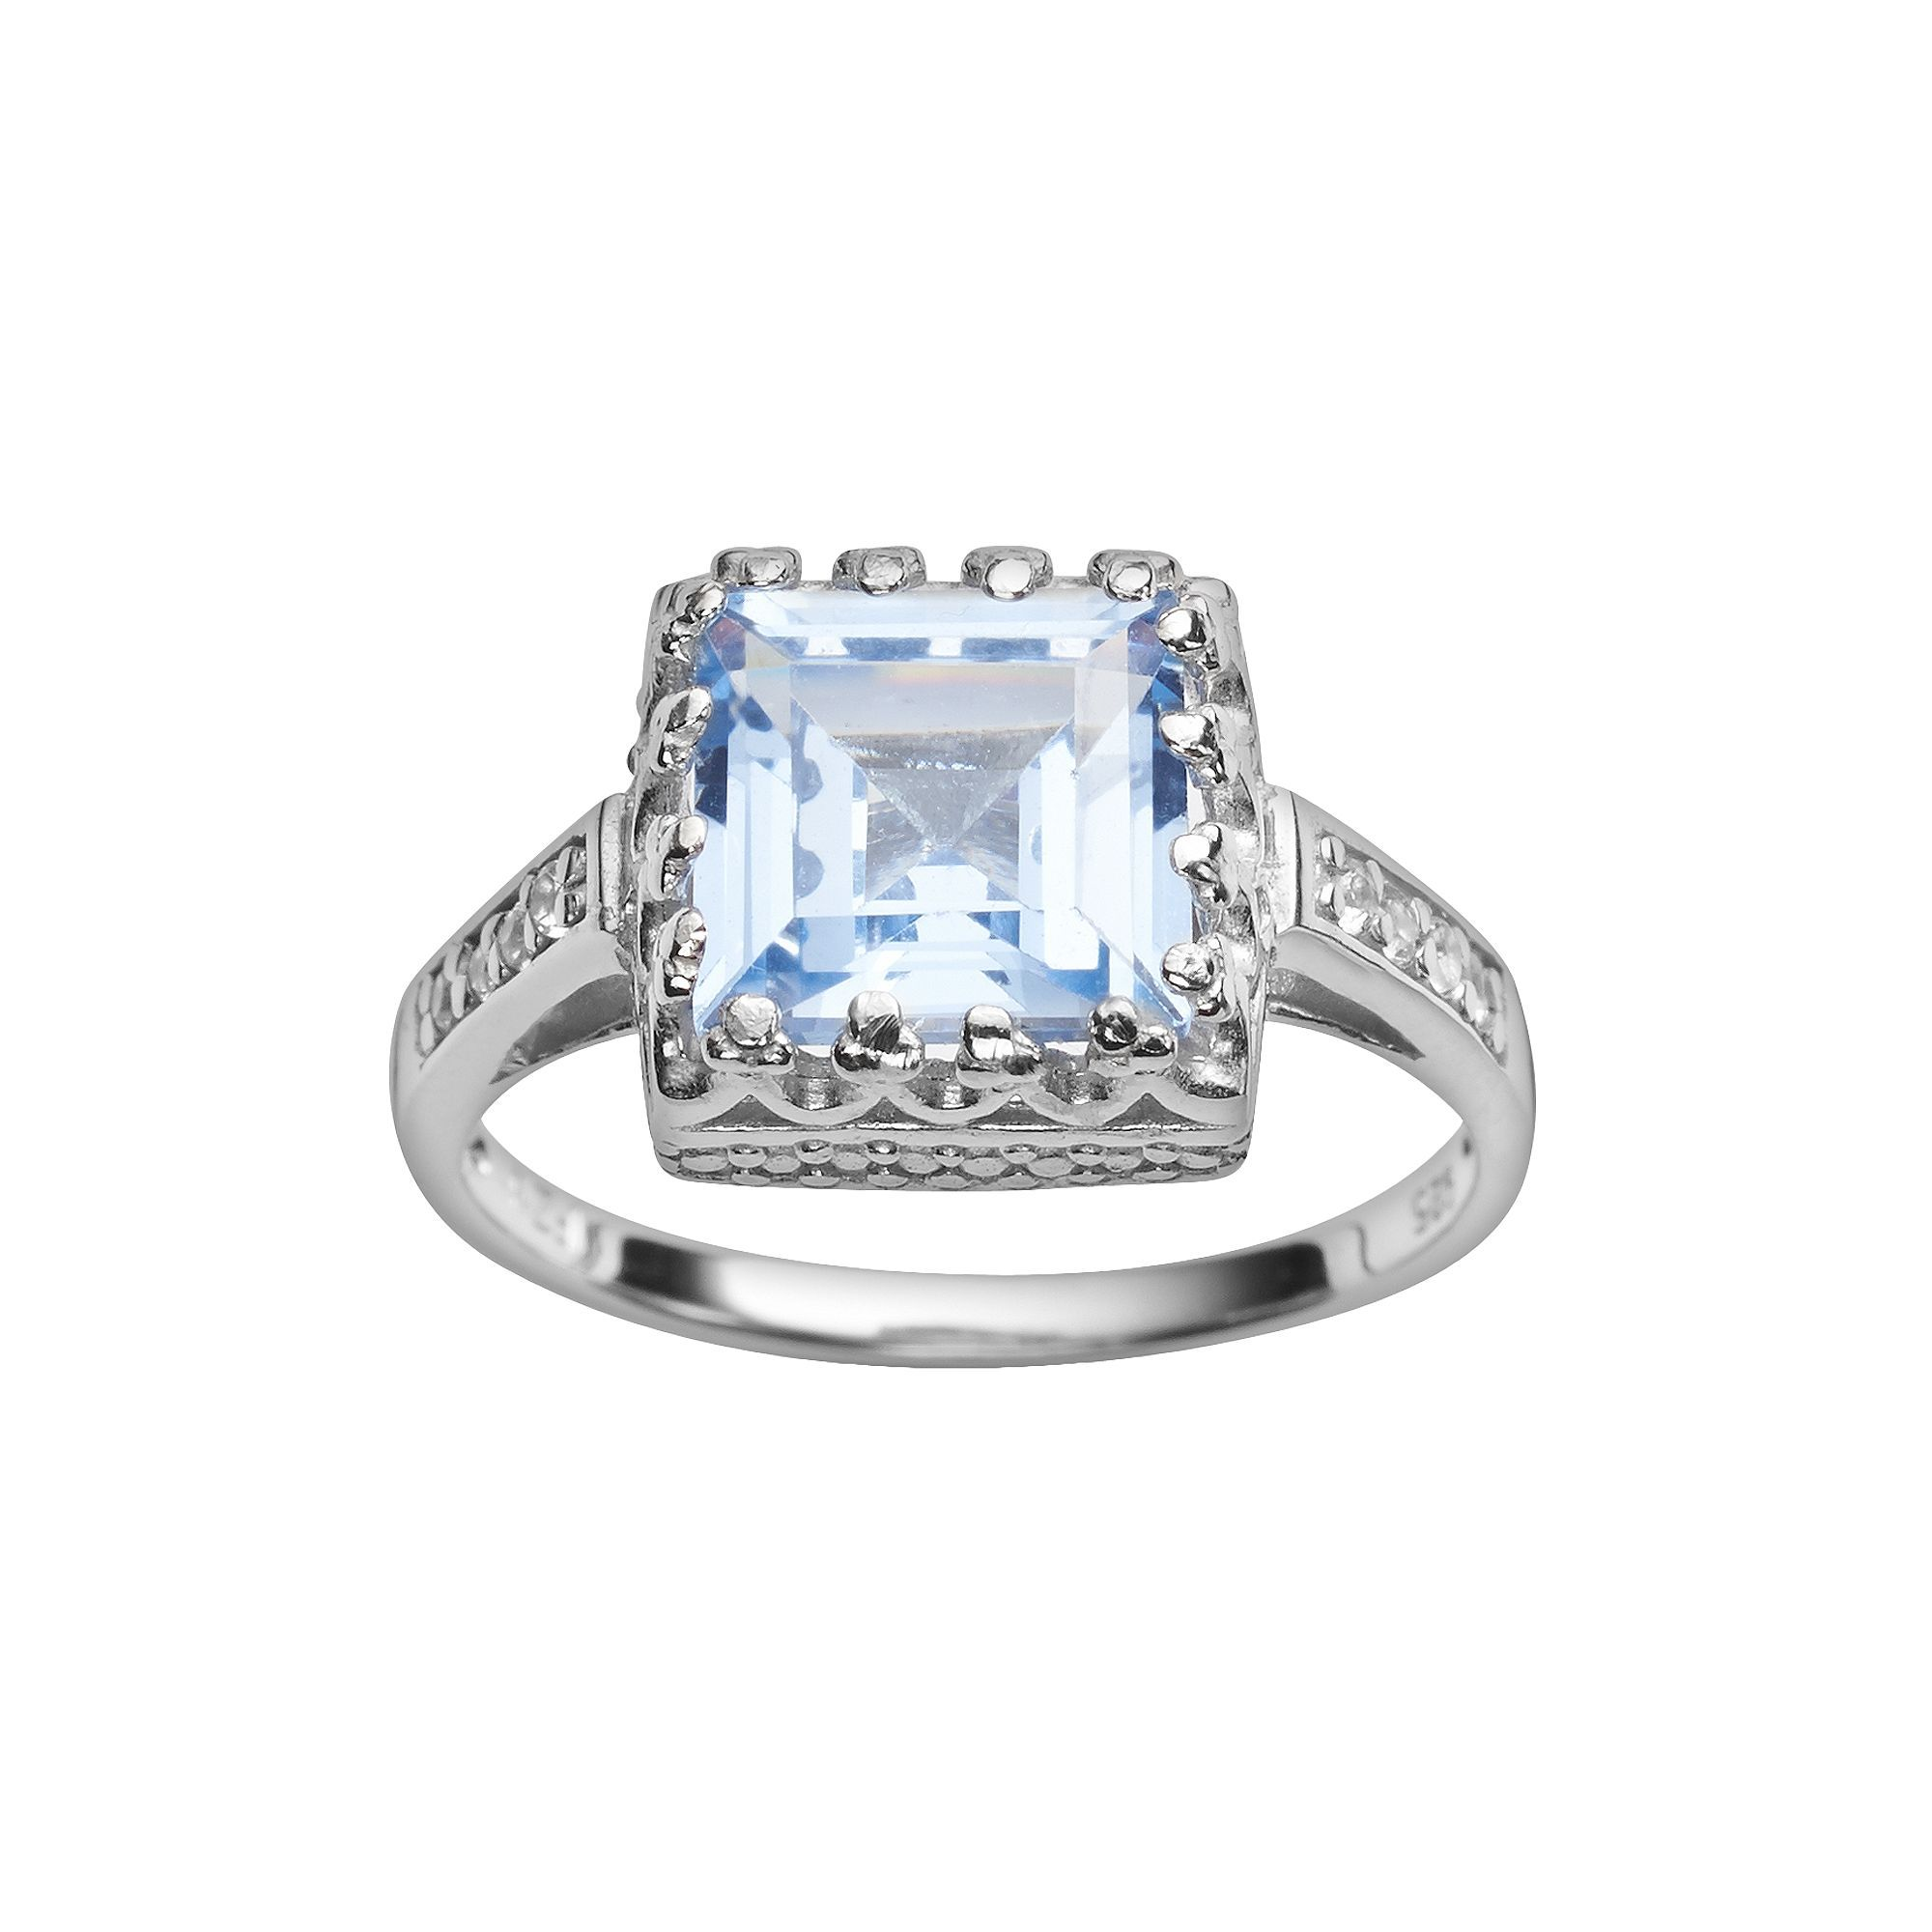 white has unique recommend are the fantastic very clear and rings lab halo stones a comfortable created engagement believable highly it italo is design i on sapphire ring beautiful